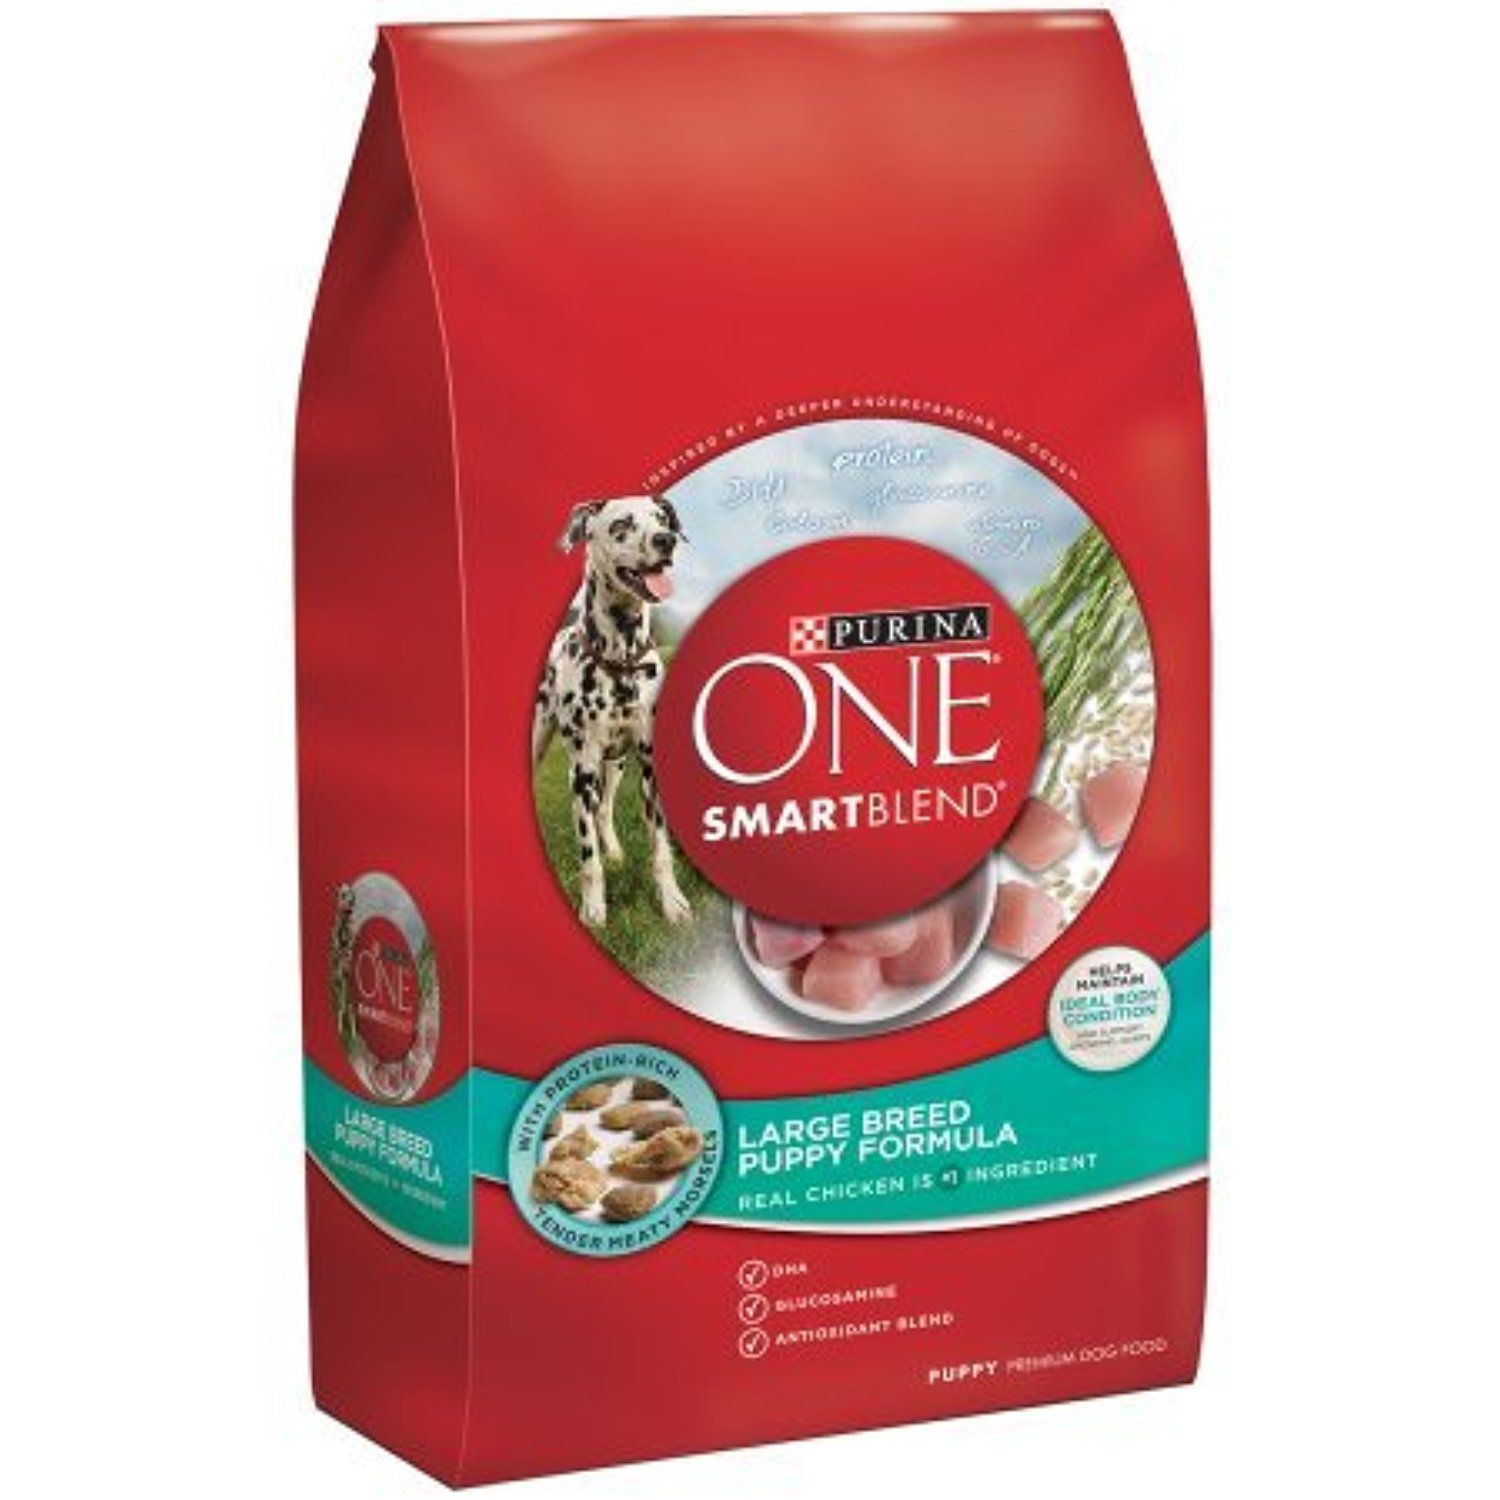 Purina One Smartblend Large Breed Puppy Formula Premium Dog Food 31 1 Lb Bag More Info Could Be Found At T Puppy Formula Premium Dog Food Dog Food Recipes